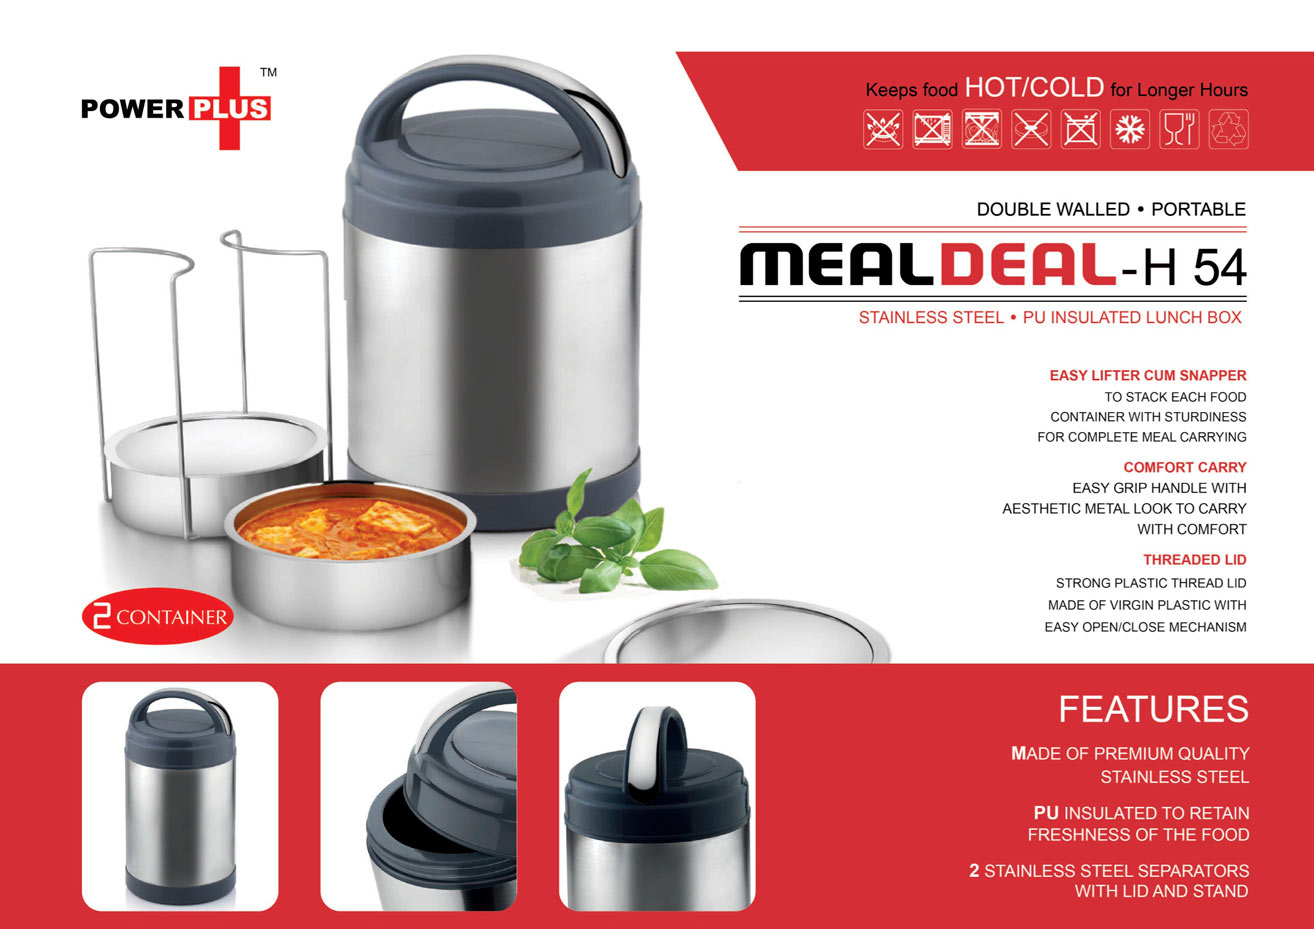 H54 - Power plus Meal Deal insulated SS Lunch box (with stainless steel containers) - 2 containers